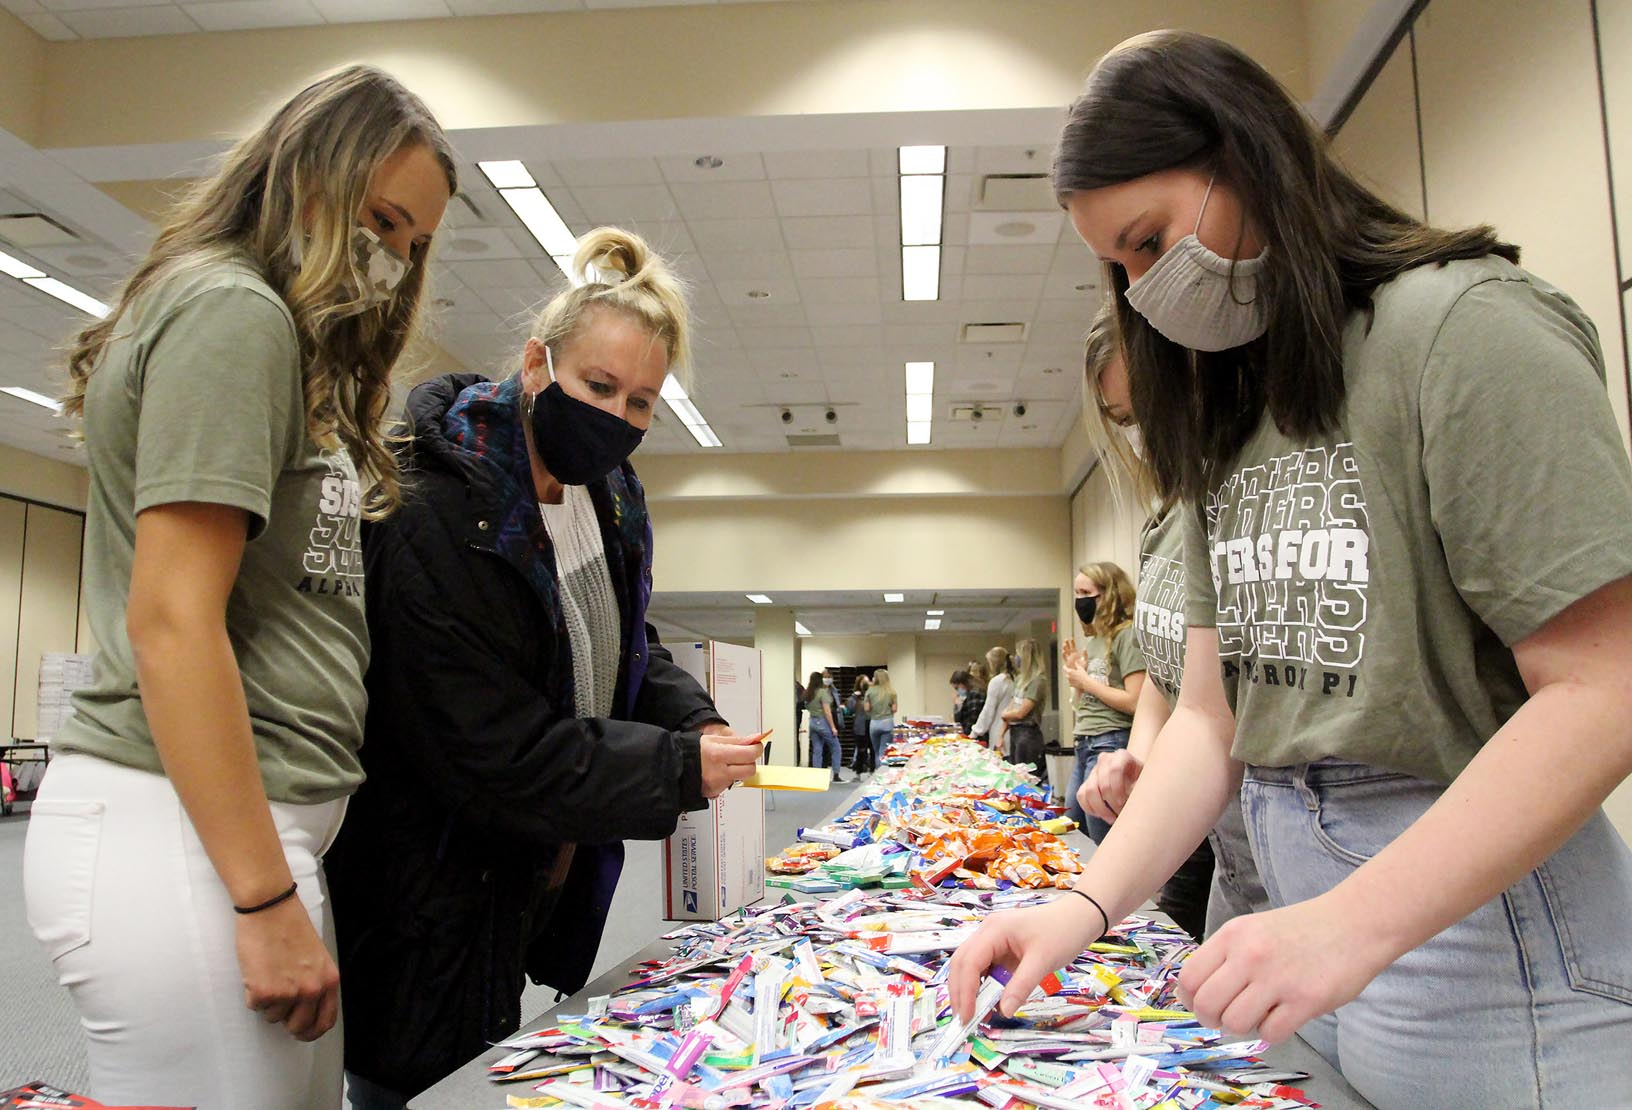 Alpha Omicron Pi members Jessie Daake of Kearney, left, and Ashley Sweet of North Platte, right, help Daake's mother Lynda create a care package for a U.S. military member during Tuesday evening's Sisters for Soldiers event.